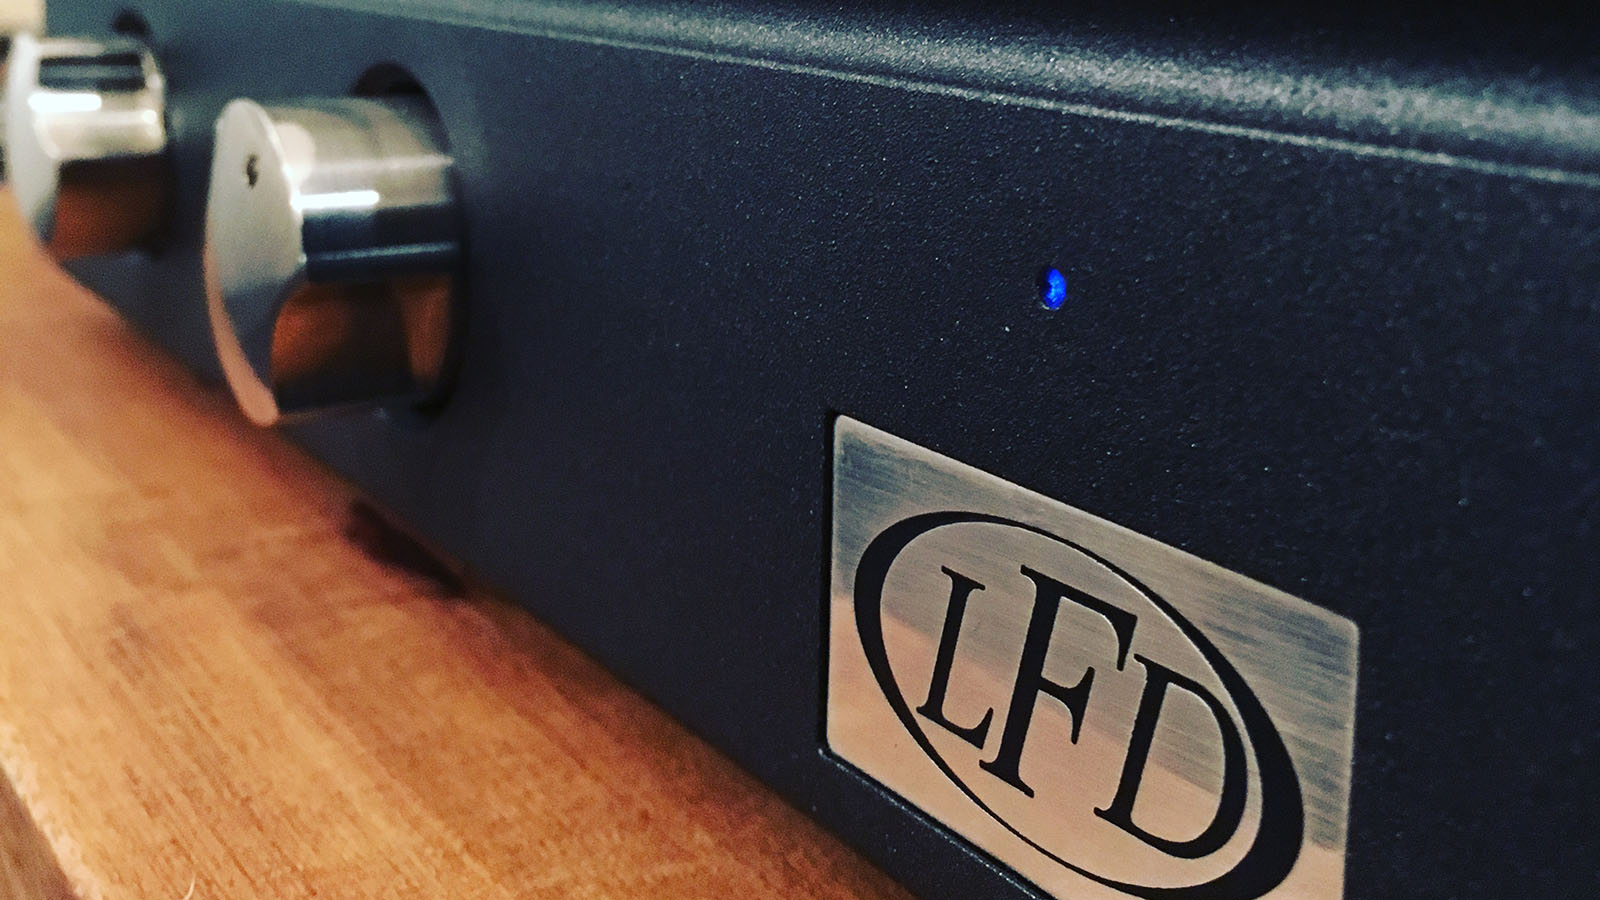 LFD integrated amplifier